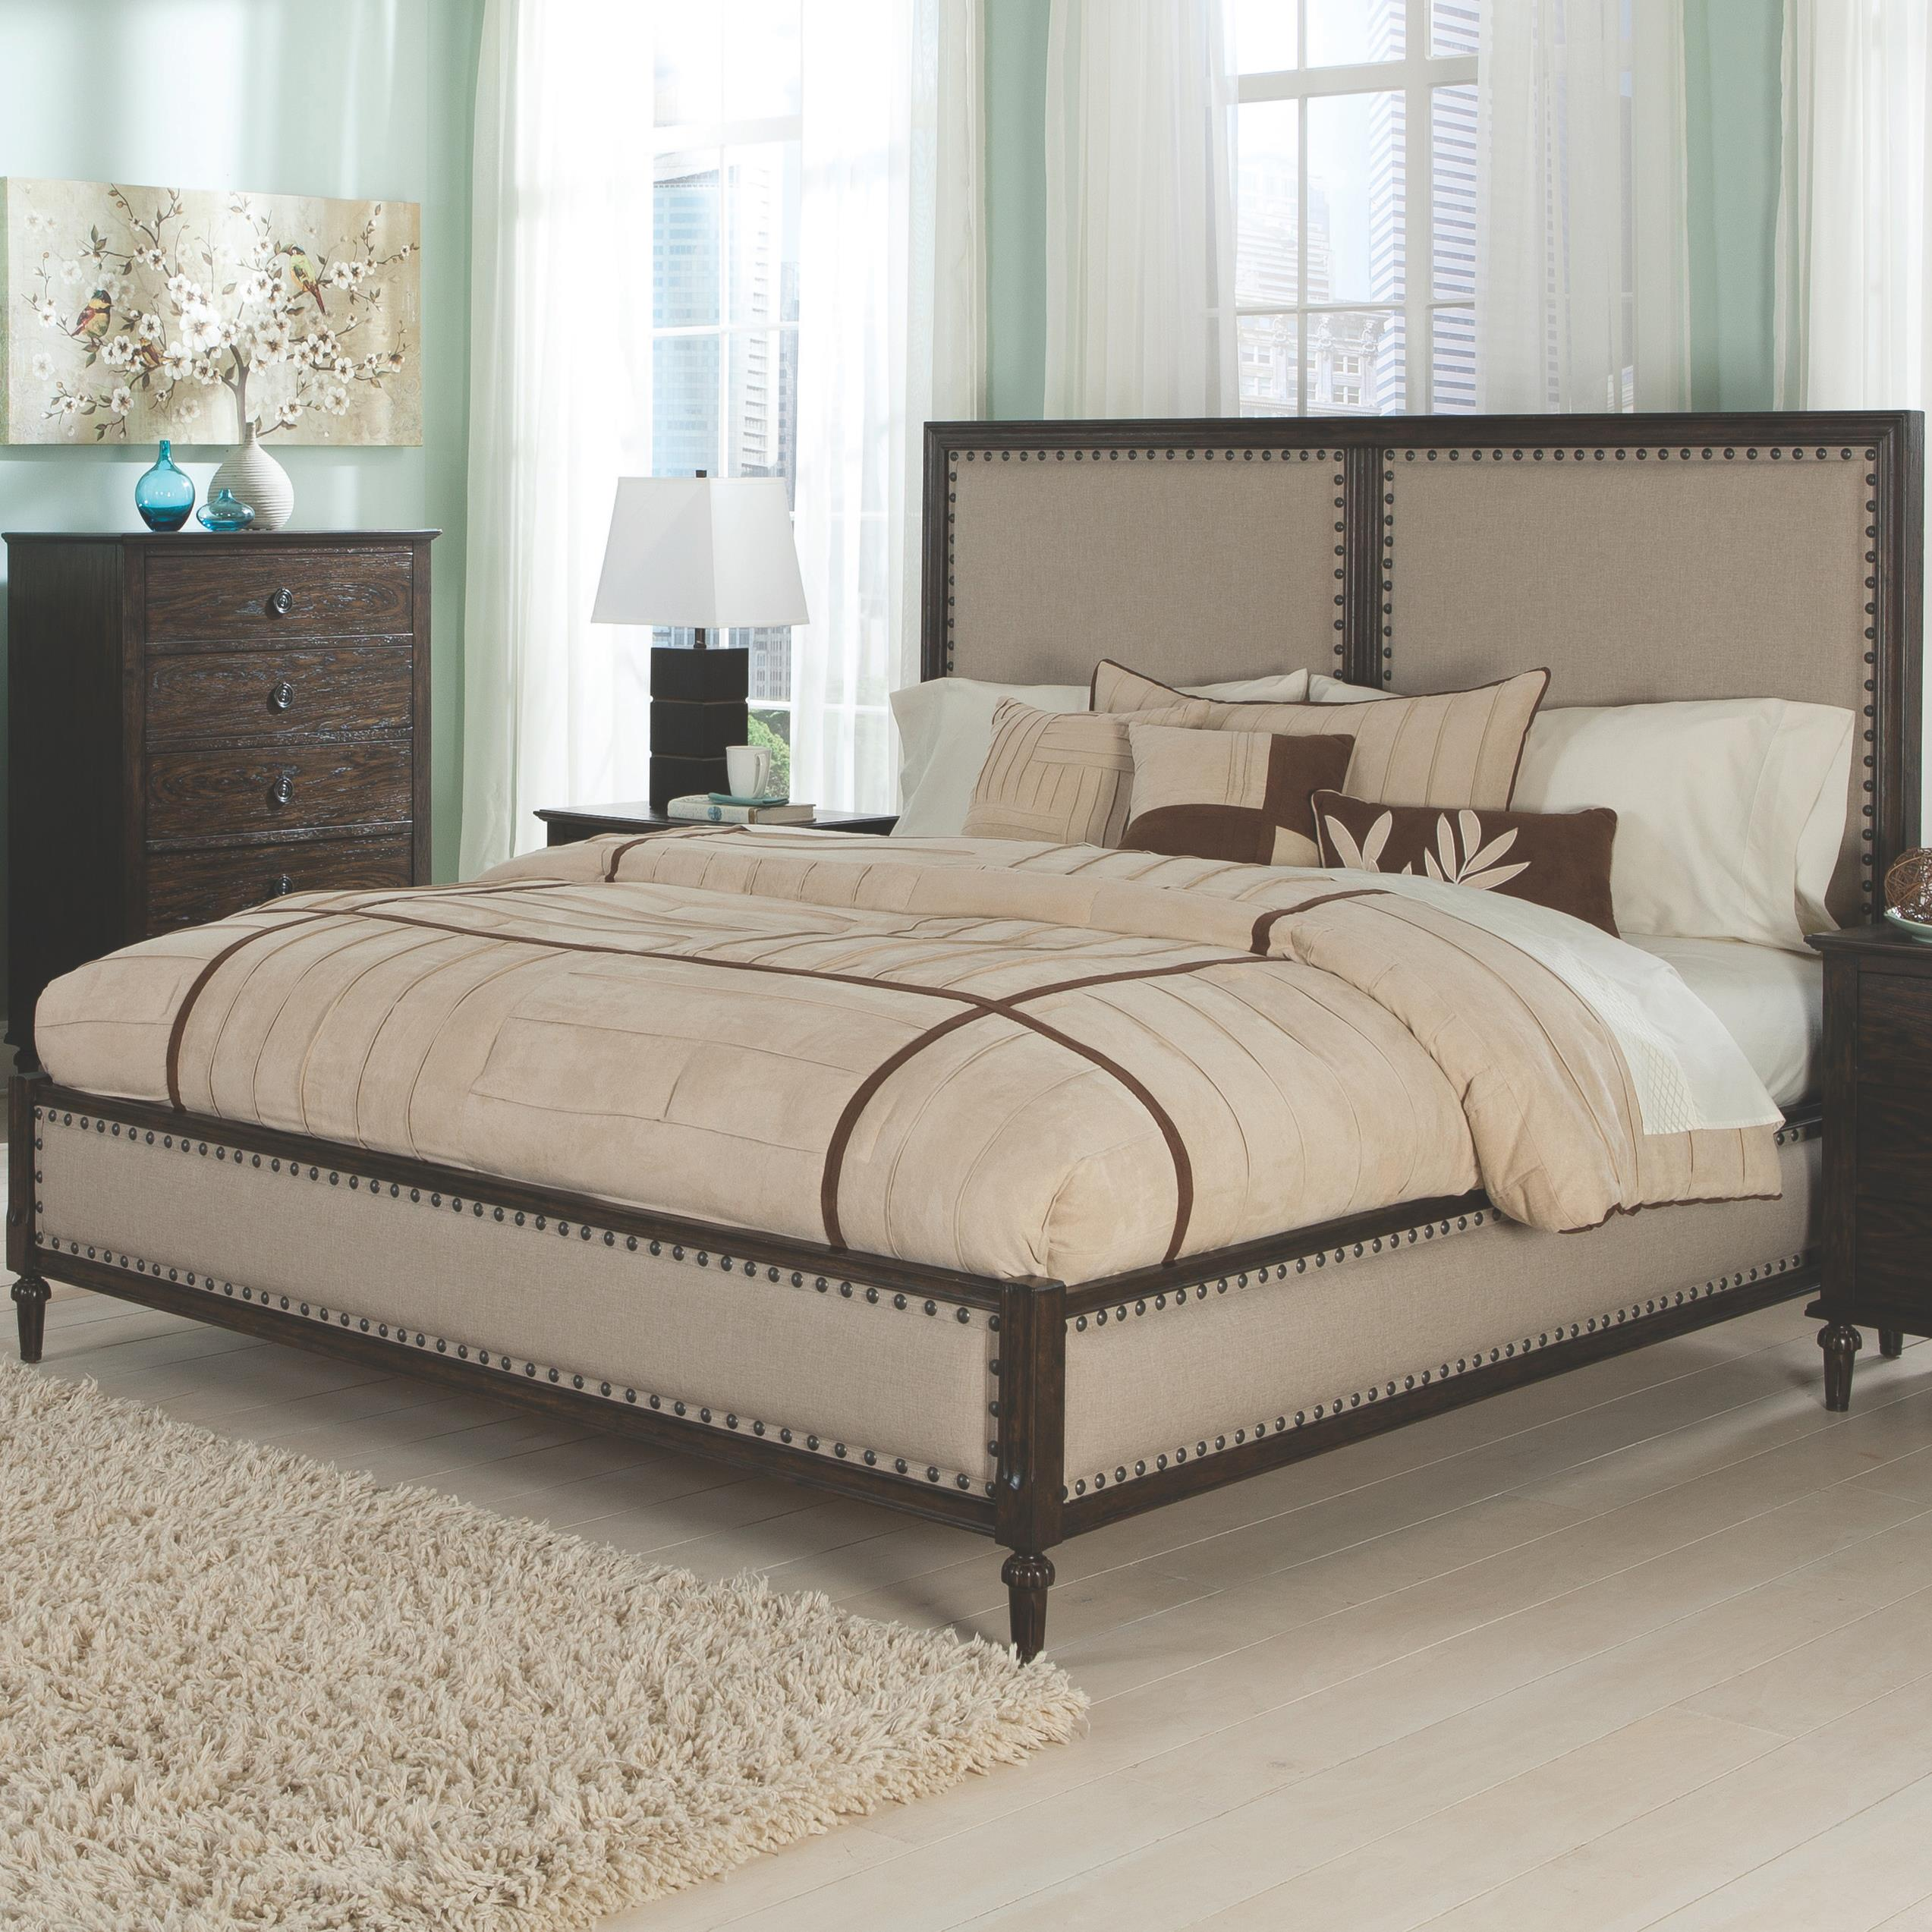 Coaster Saville King Bed - Item Number: 203931KE